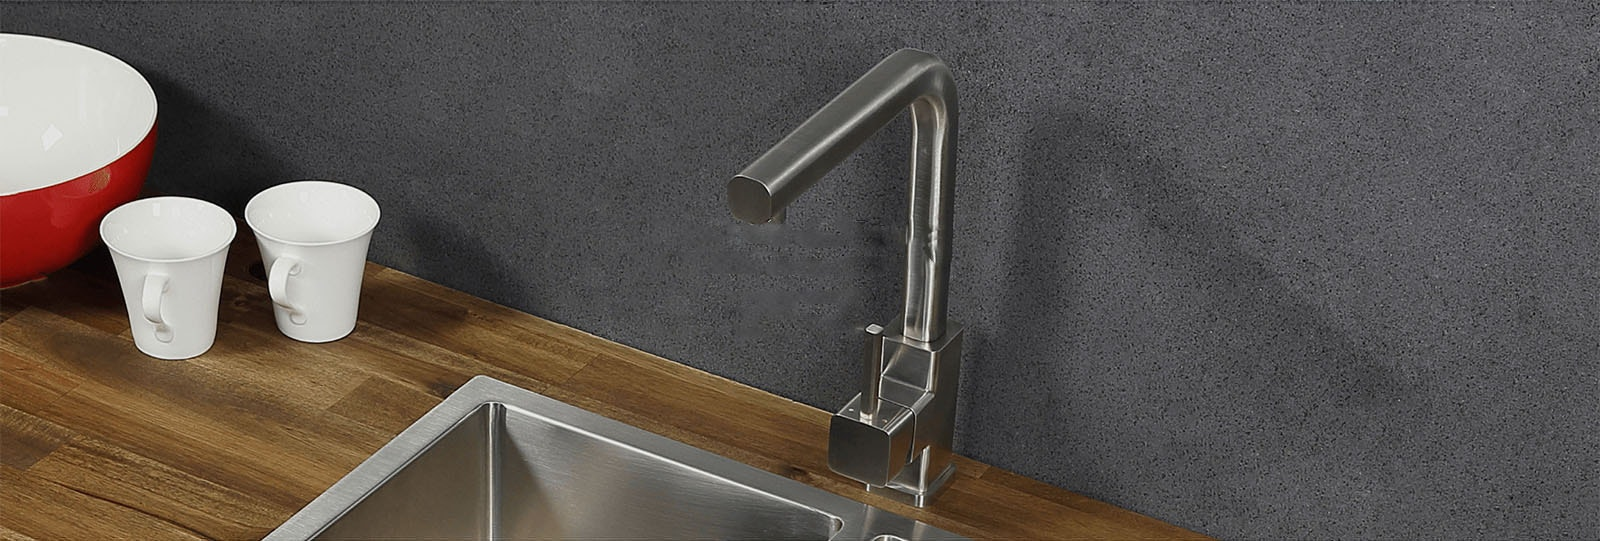 stainless steel outdoor tapware, outdoor kitchen sink, stainless steel taps, kitchen mixer tap